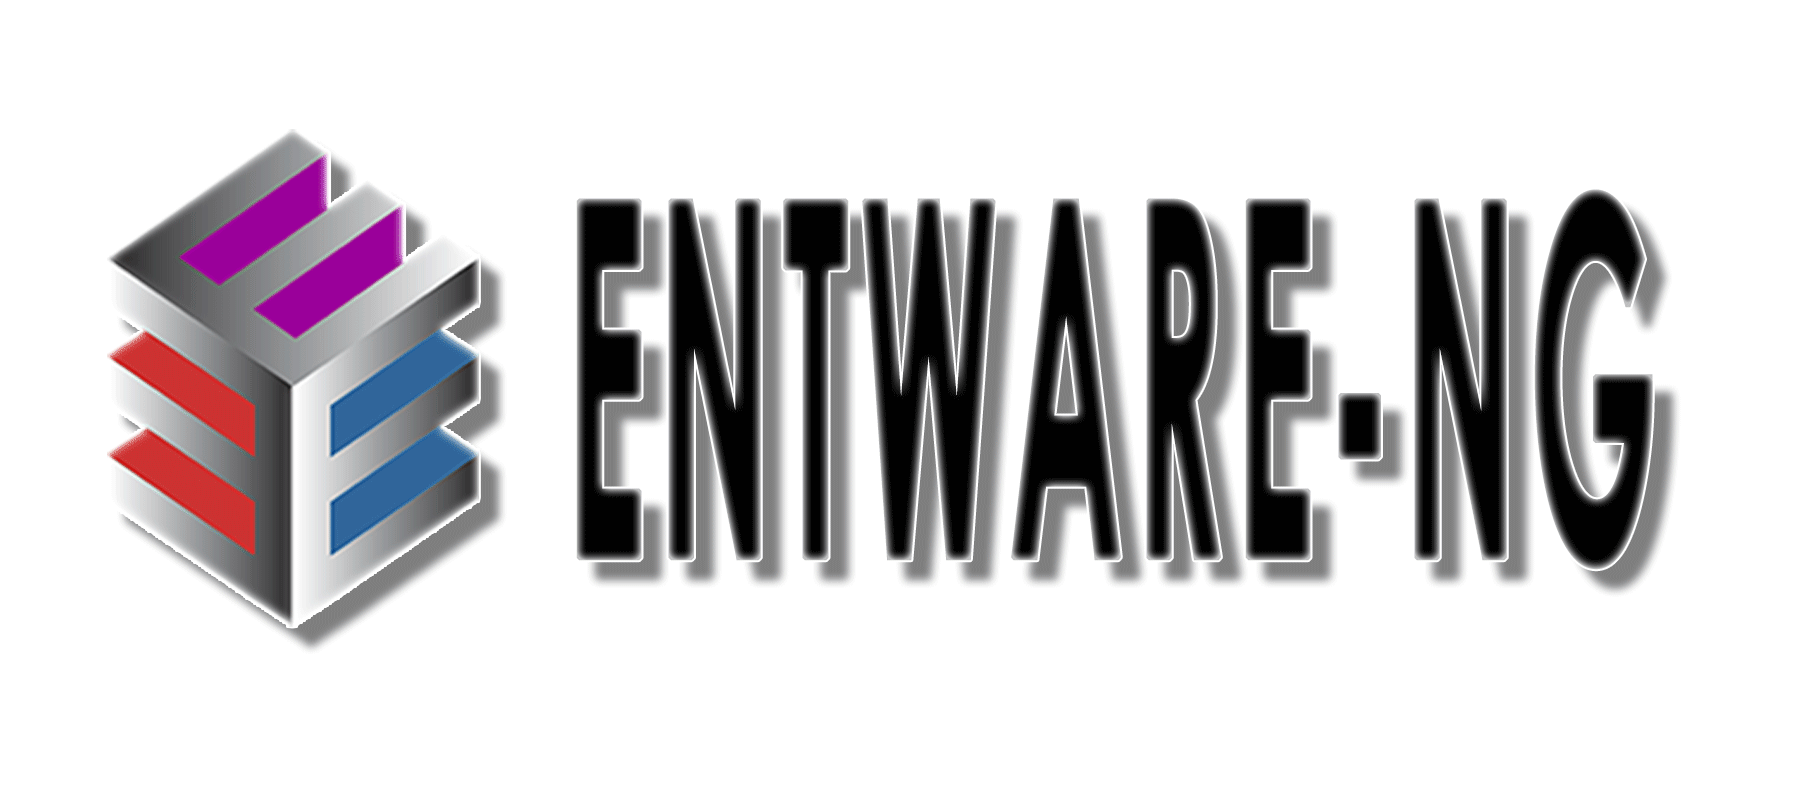 How To Install New Generation Entware – HQT